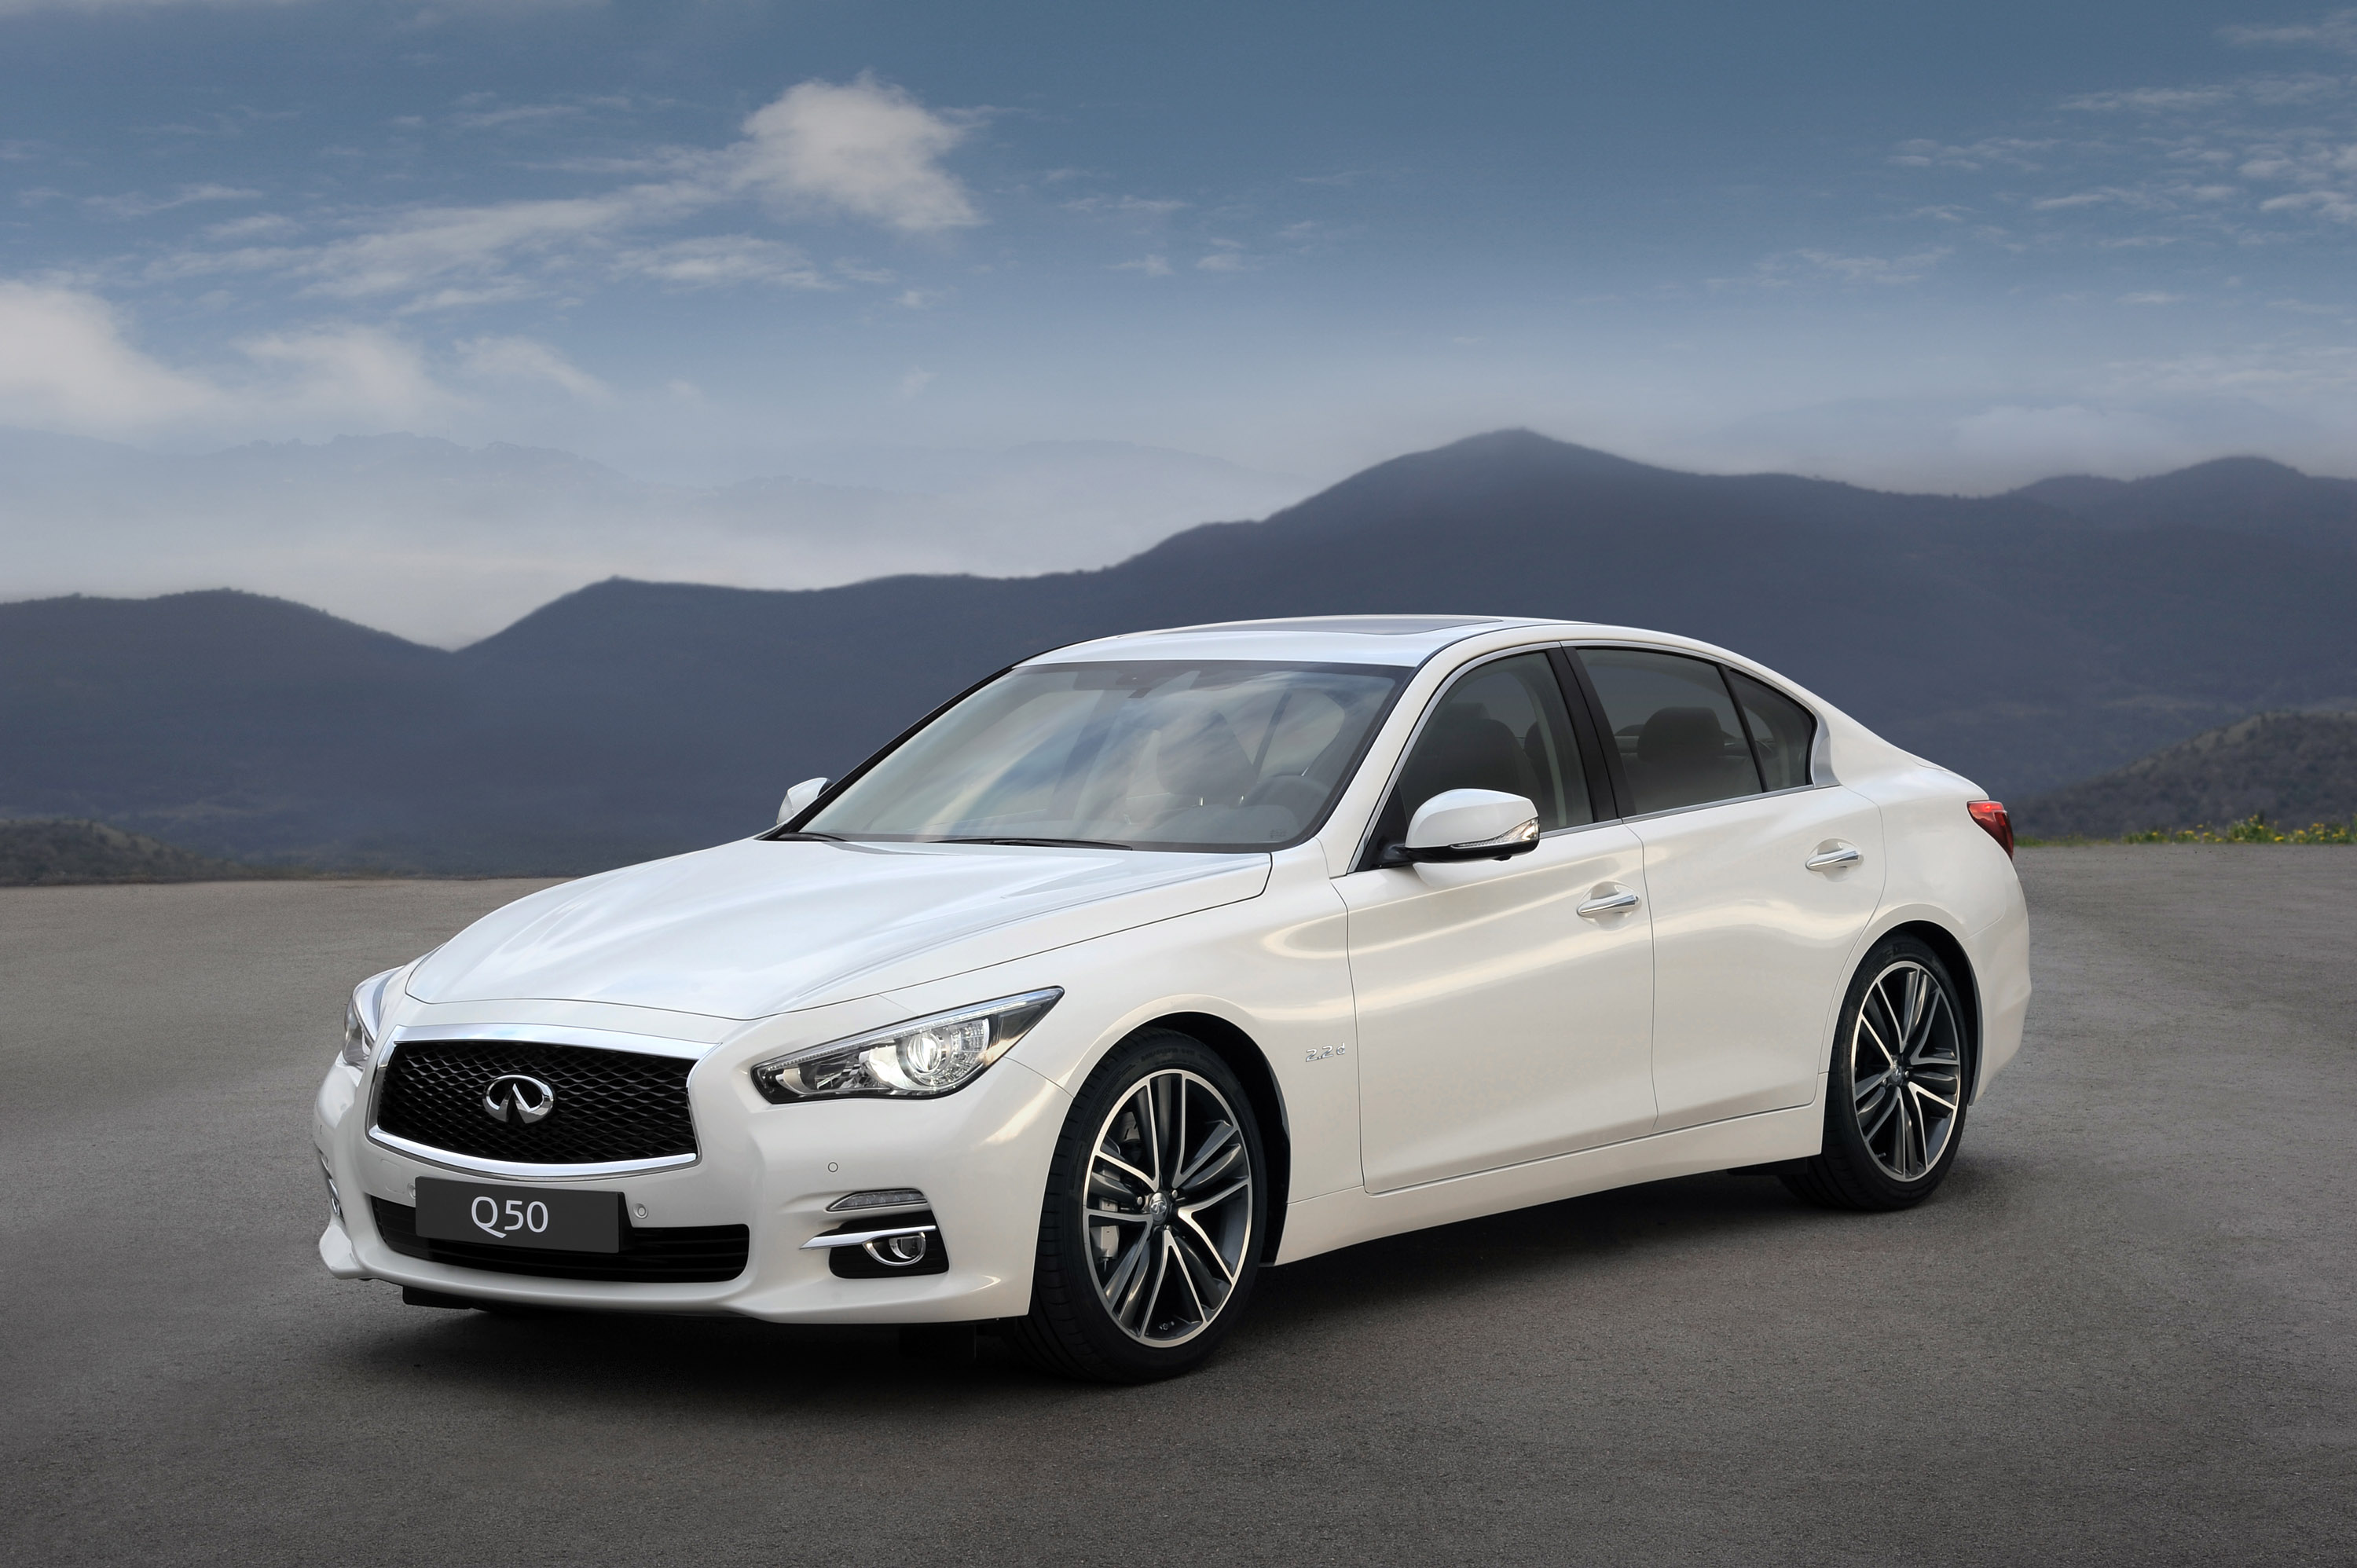 2014 infiniti q50 adds two litre turbocharged petrol engine. Black Bedroom Furniture Sets. Home Design Ideas